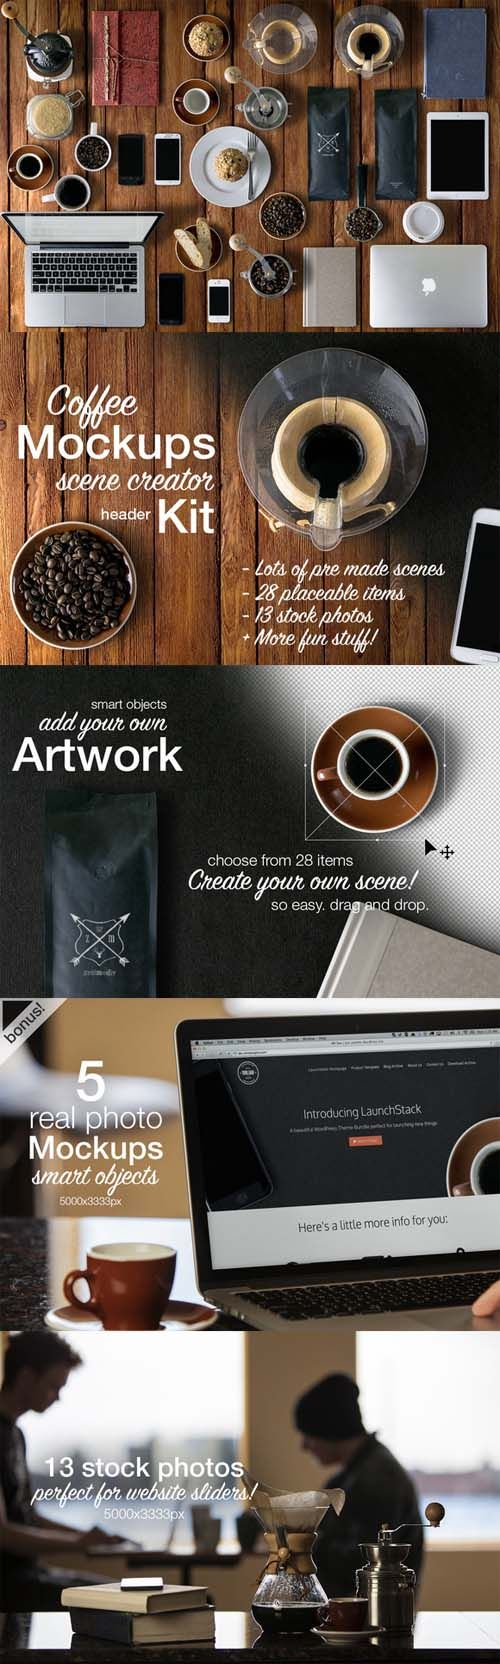 Coffee Mockups Scene Creator » Vector, PSD Templates, Stock Images, After Effects, Fonts, Web De ...